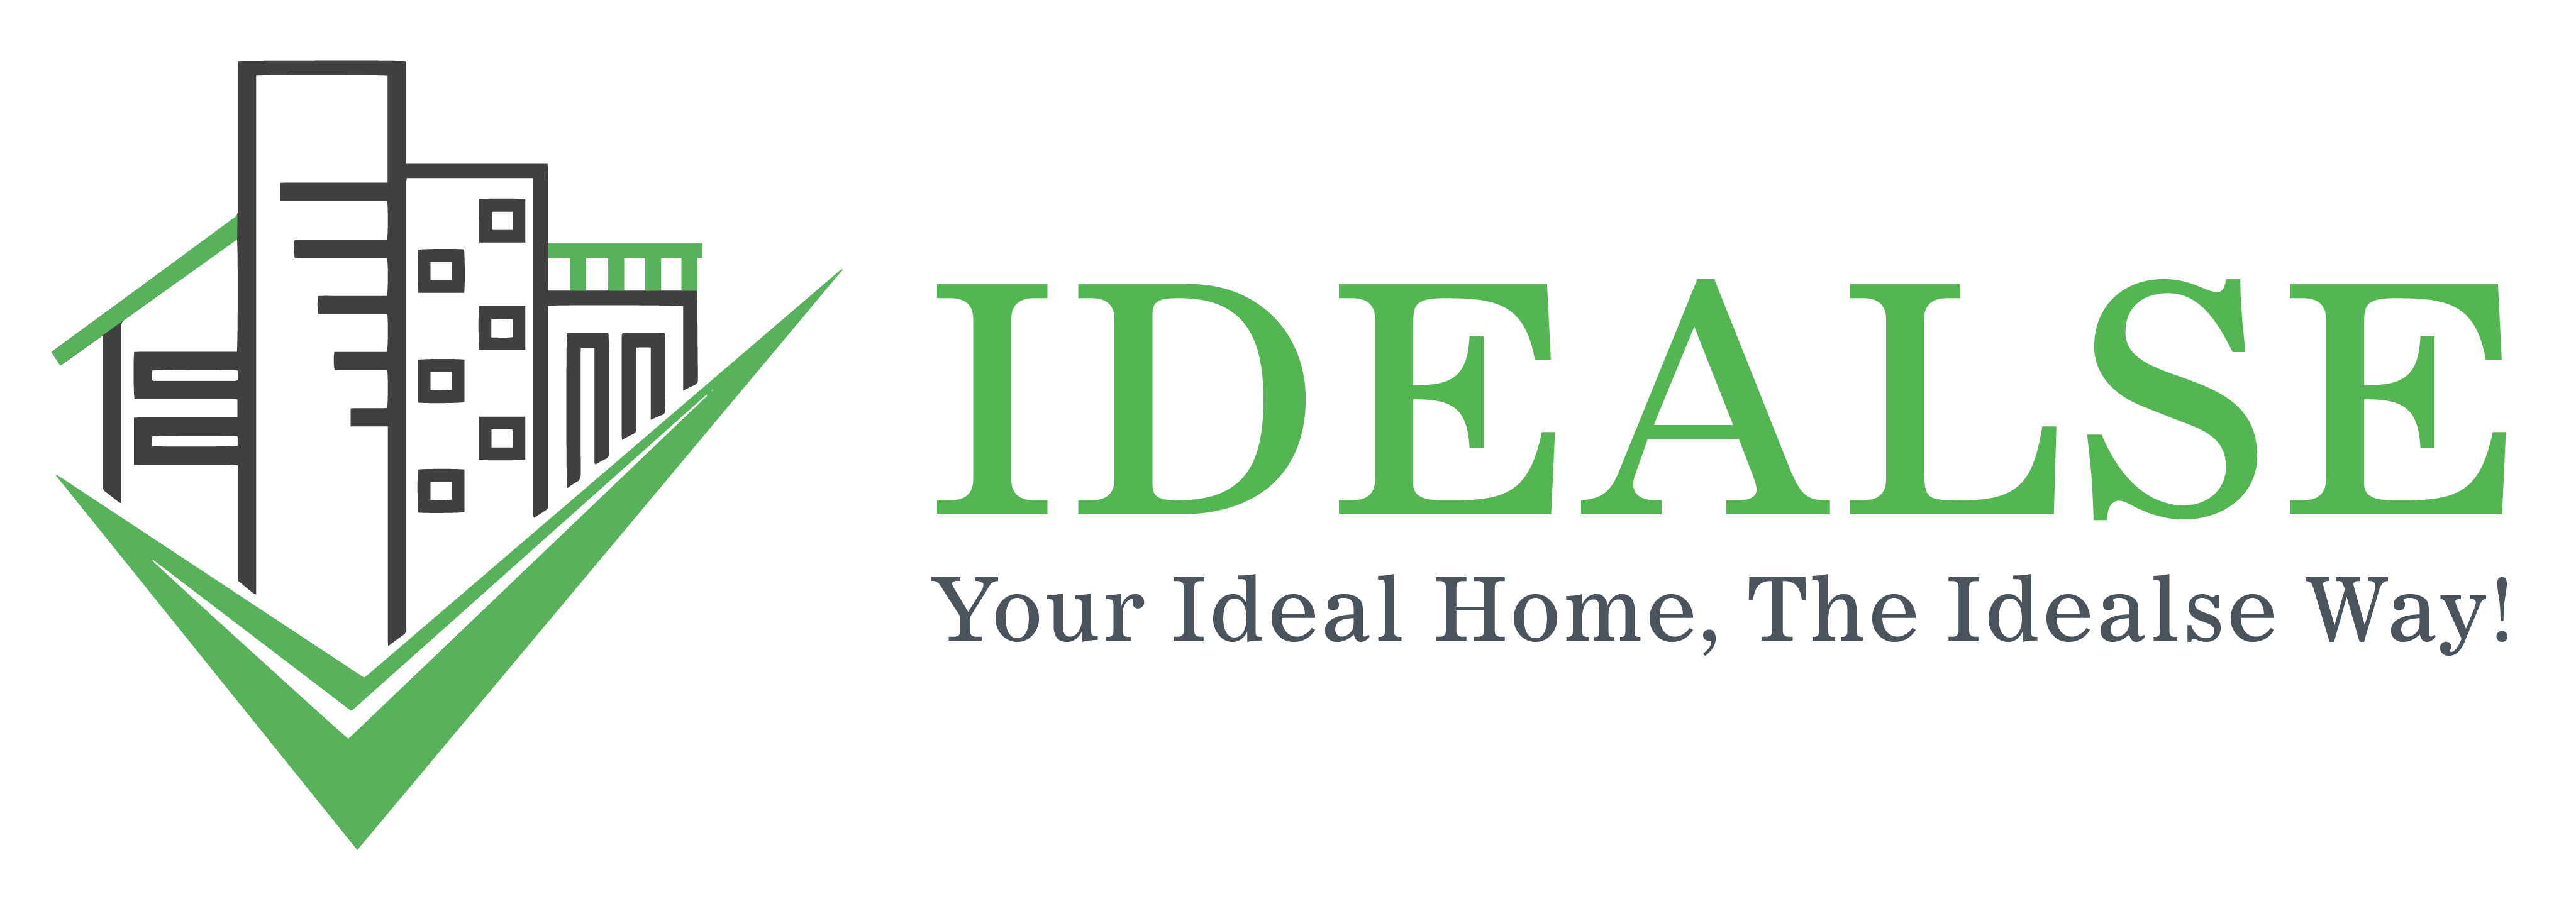 Idealse | Your Ideal Home, The Idealse Way!